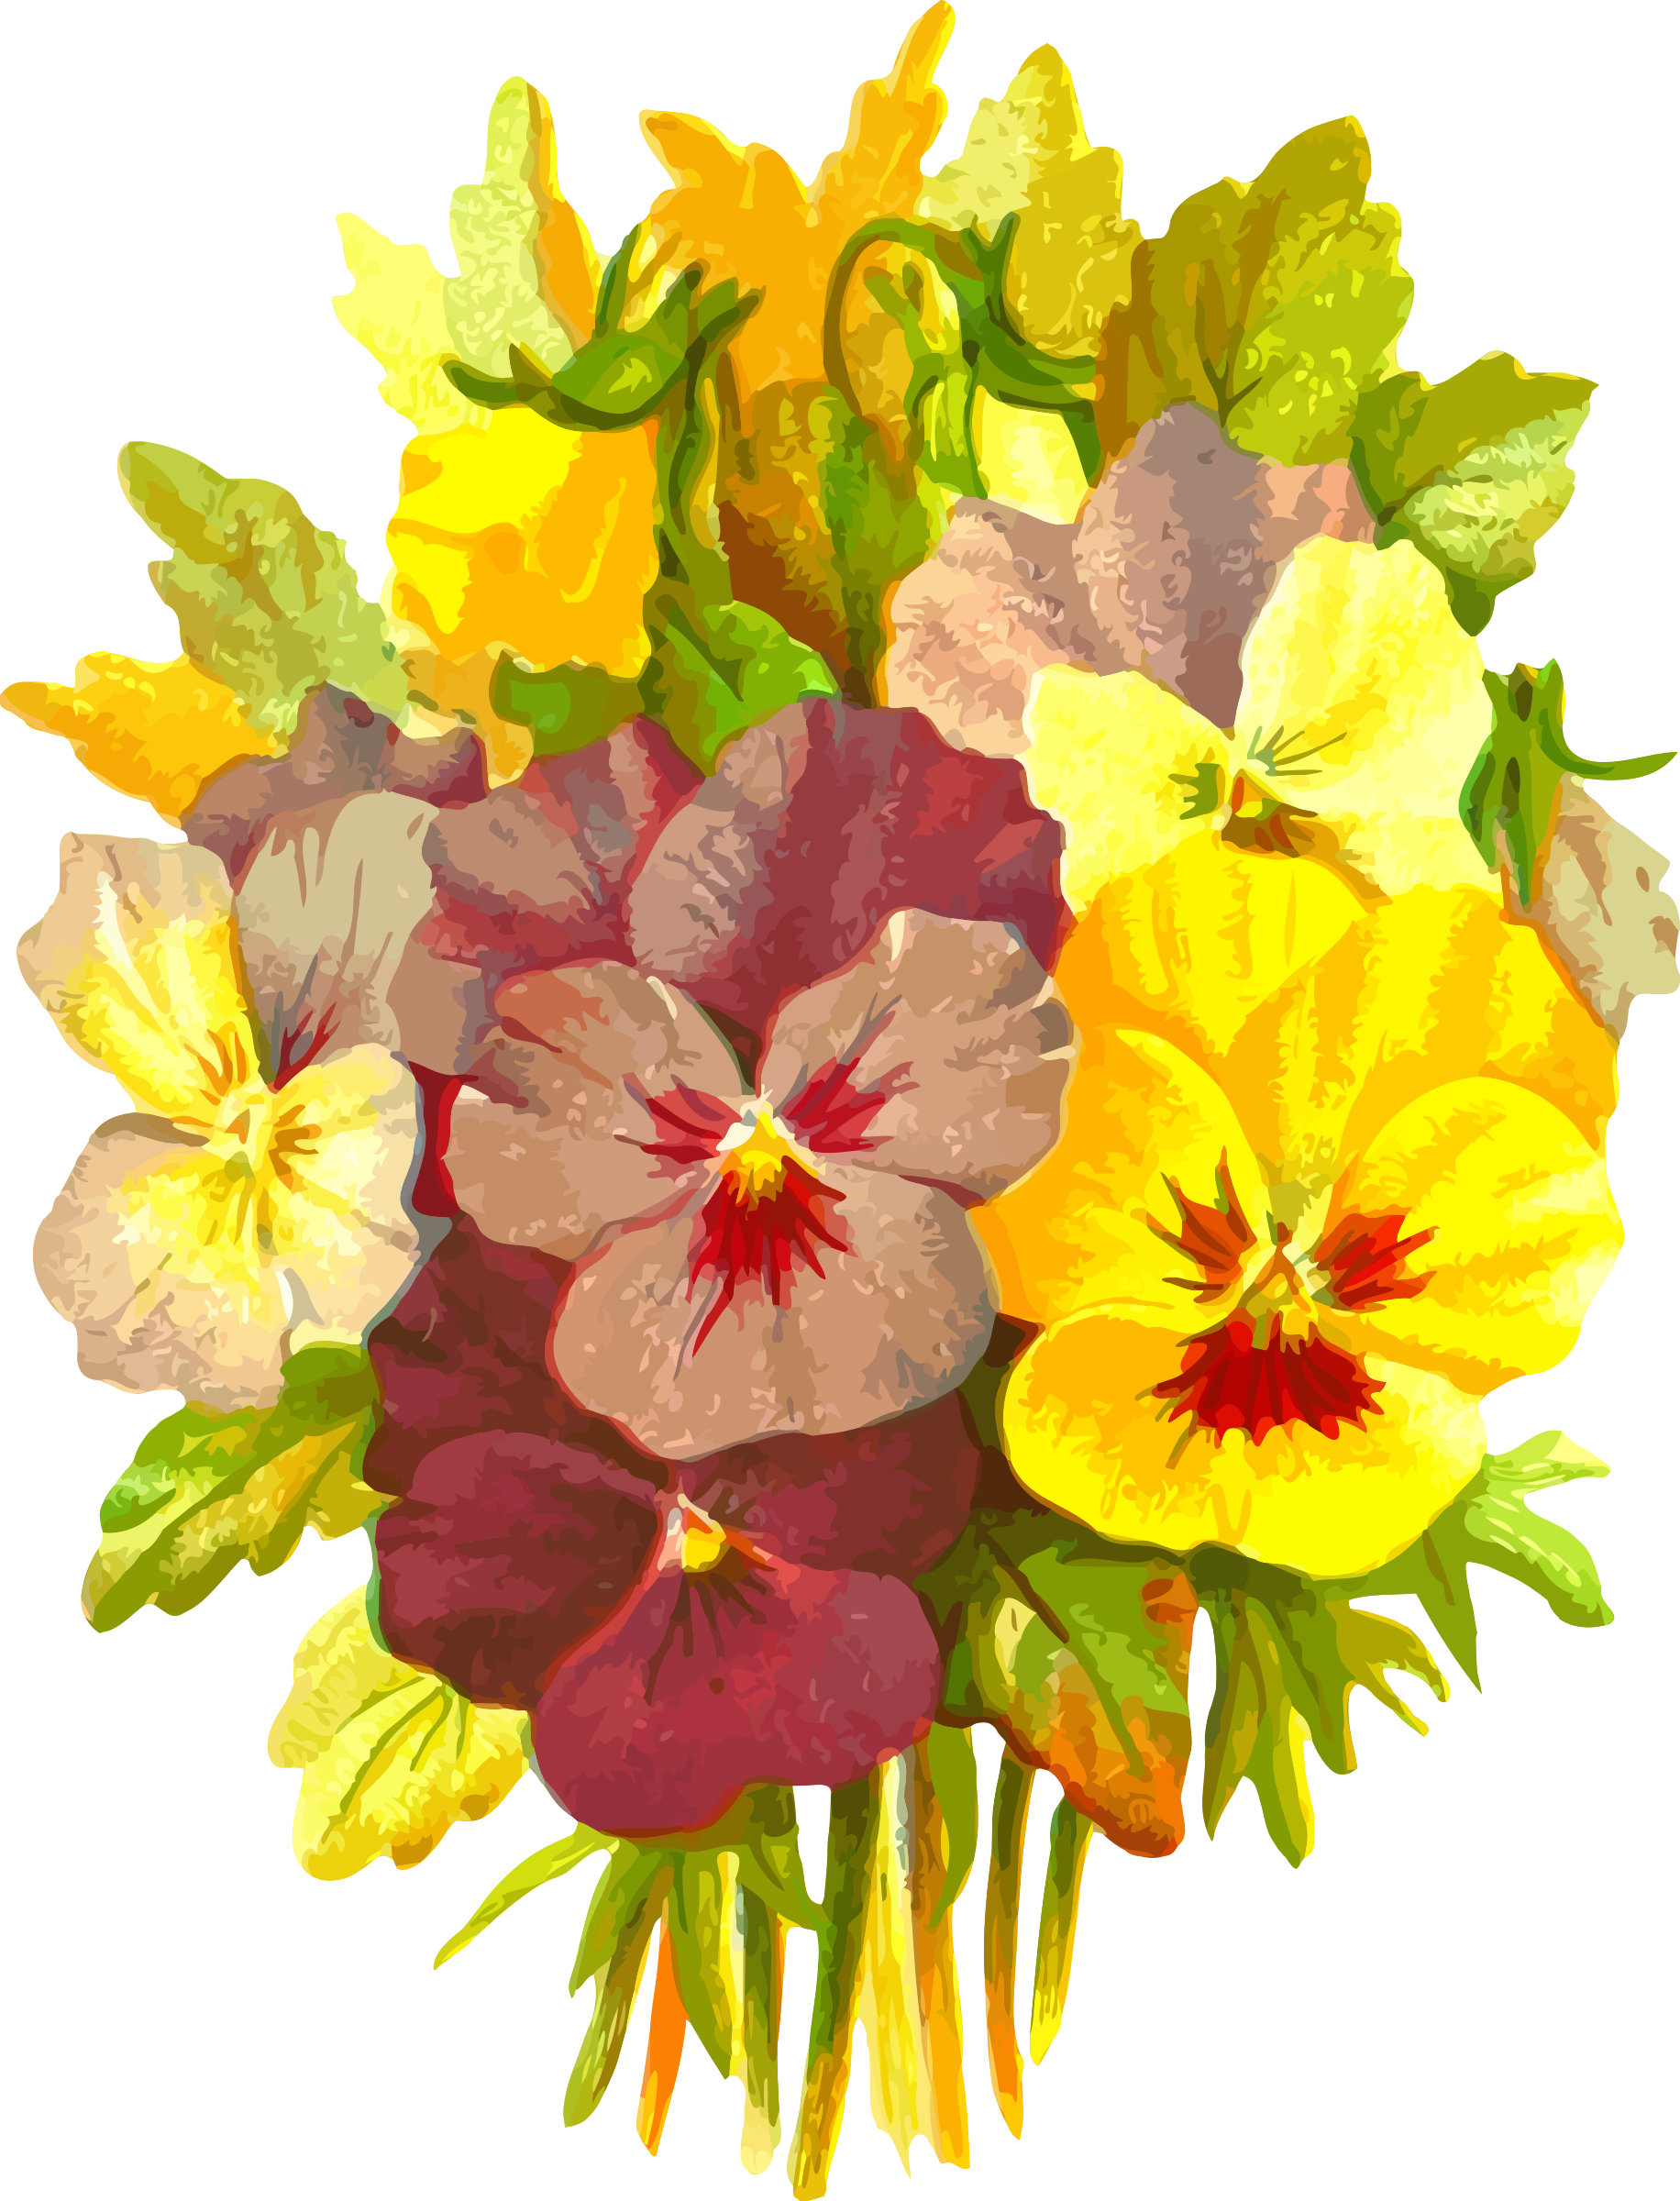 Pansies 2 by Firkin